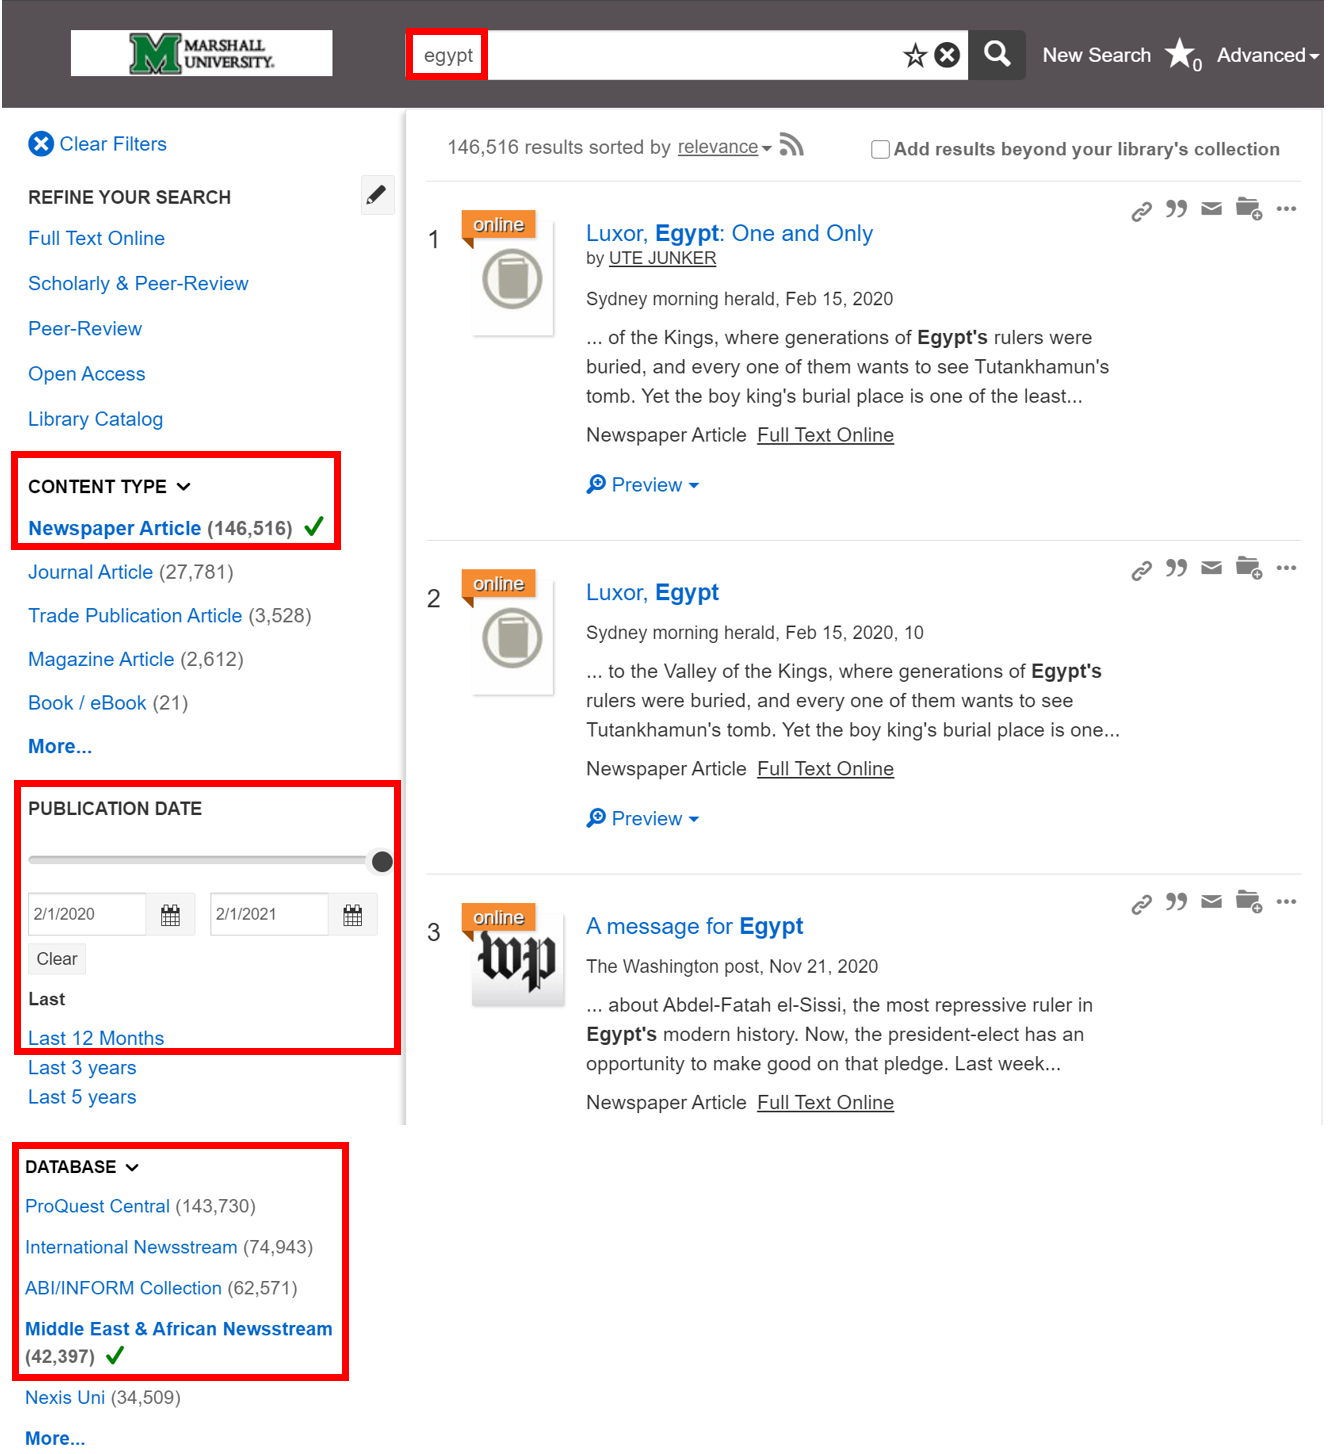 """Screenshot of Summon results page for search term """"Egypt,"""" with results narrowed by: Content Type: Newspaper; Publication Date: Last 12 Months; and, Database: African and Middle Eastern Newswire"""